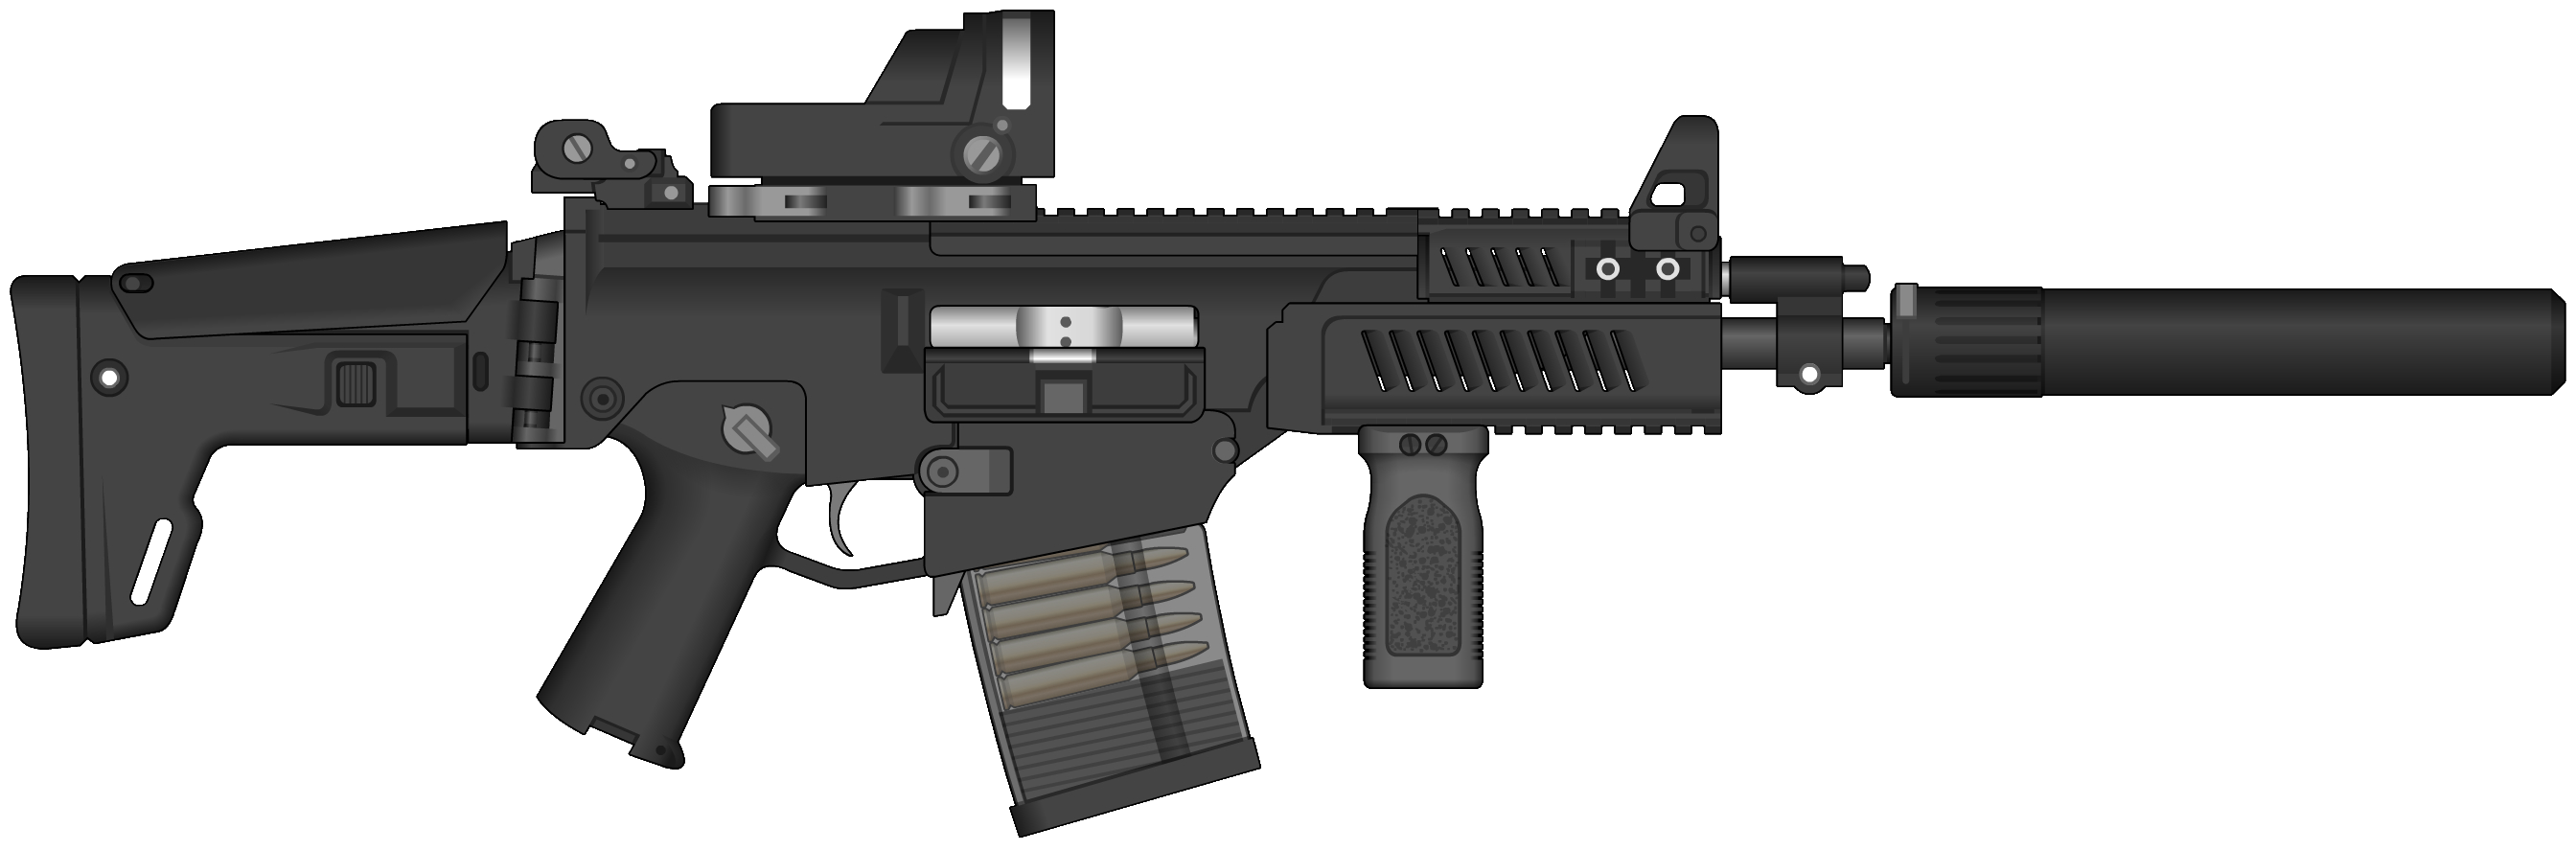 Rifle clipart png. Assault image purepng free